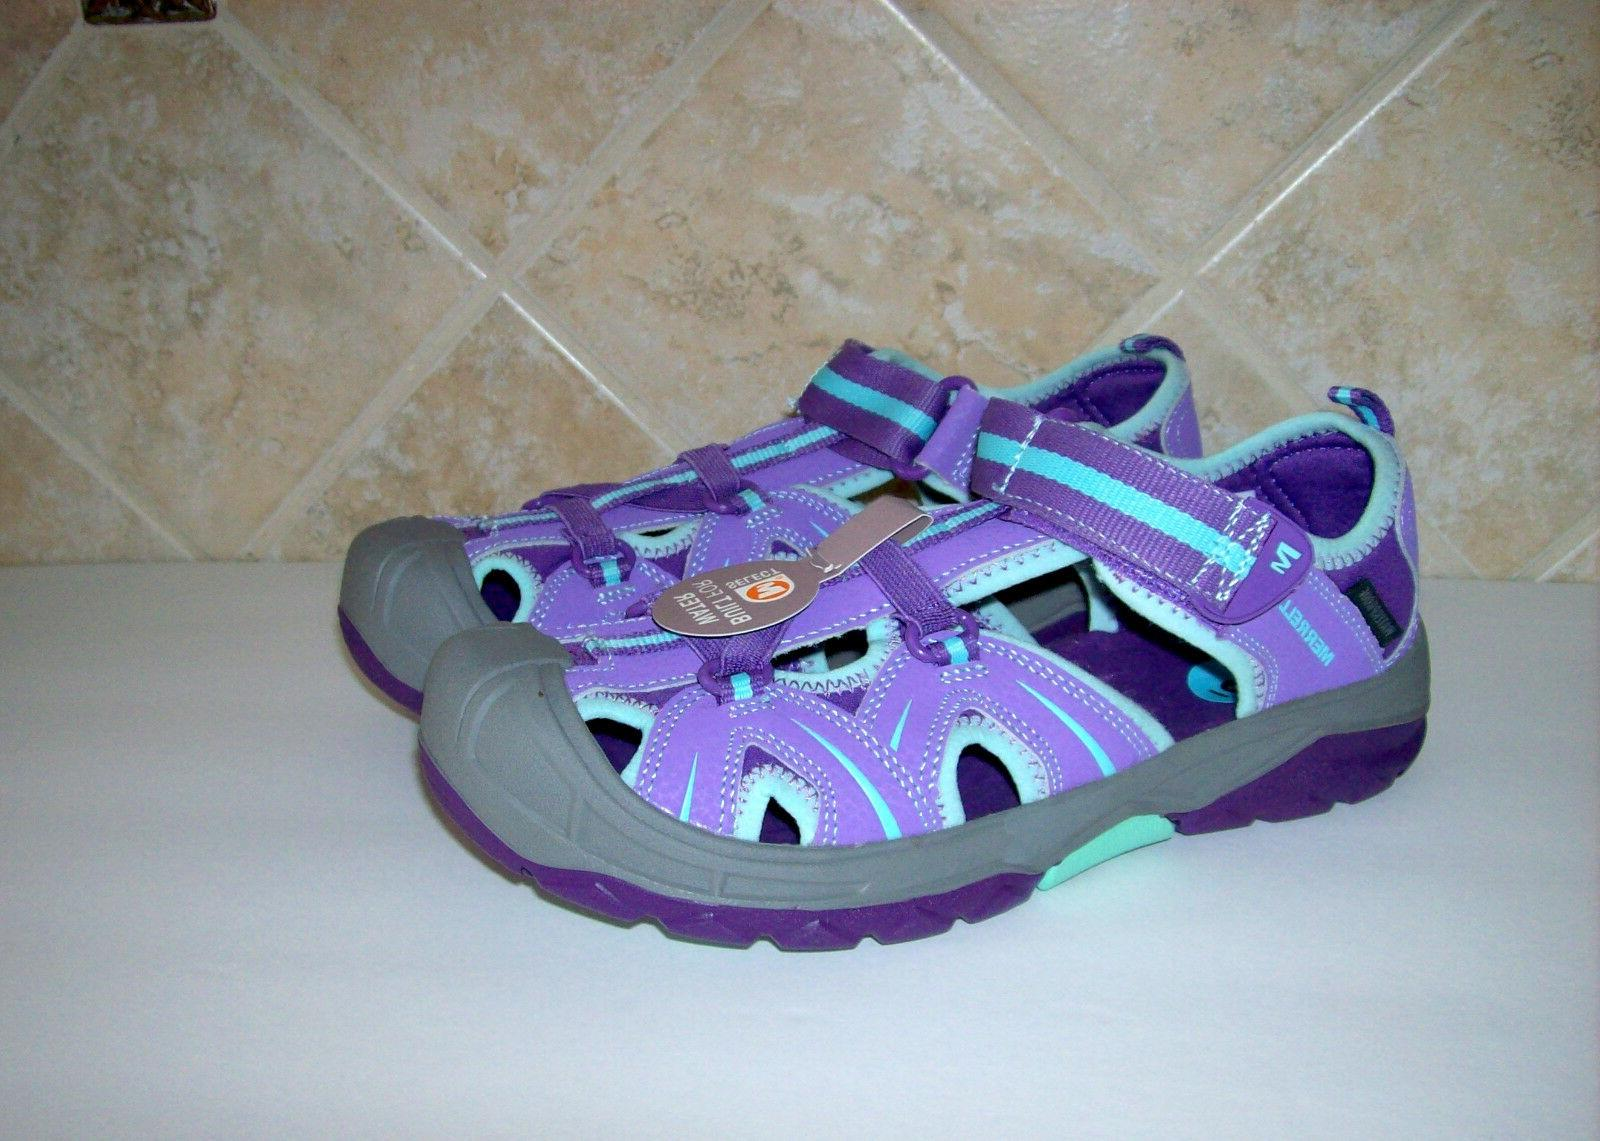 NEW Merrell Shoes Shoes Mismarked Size 6?